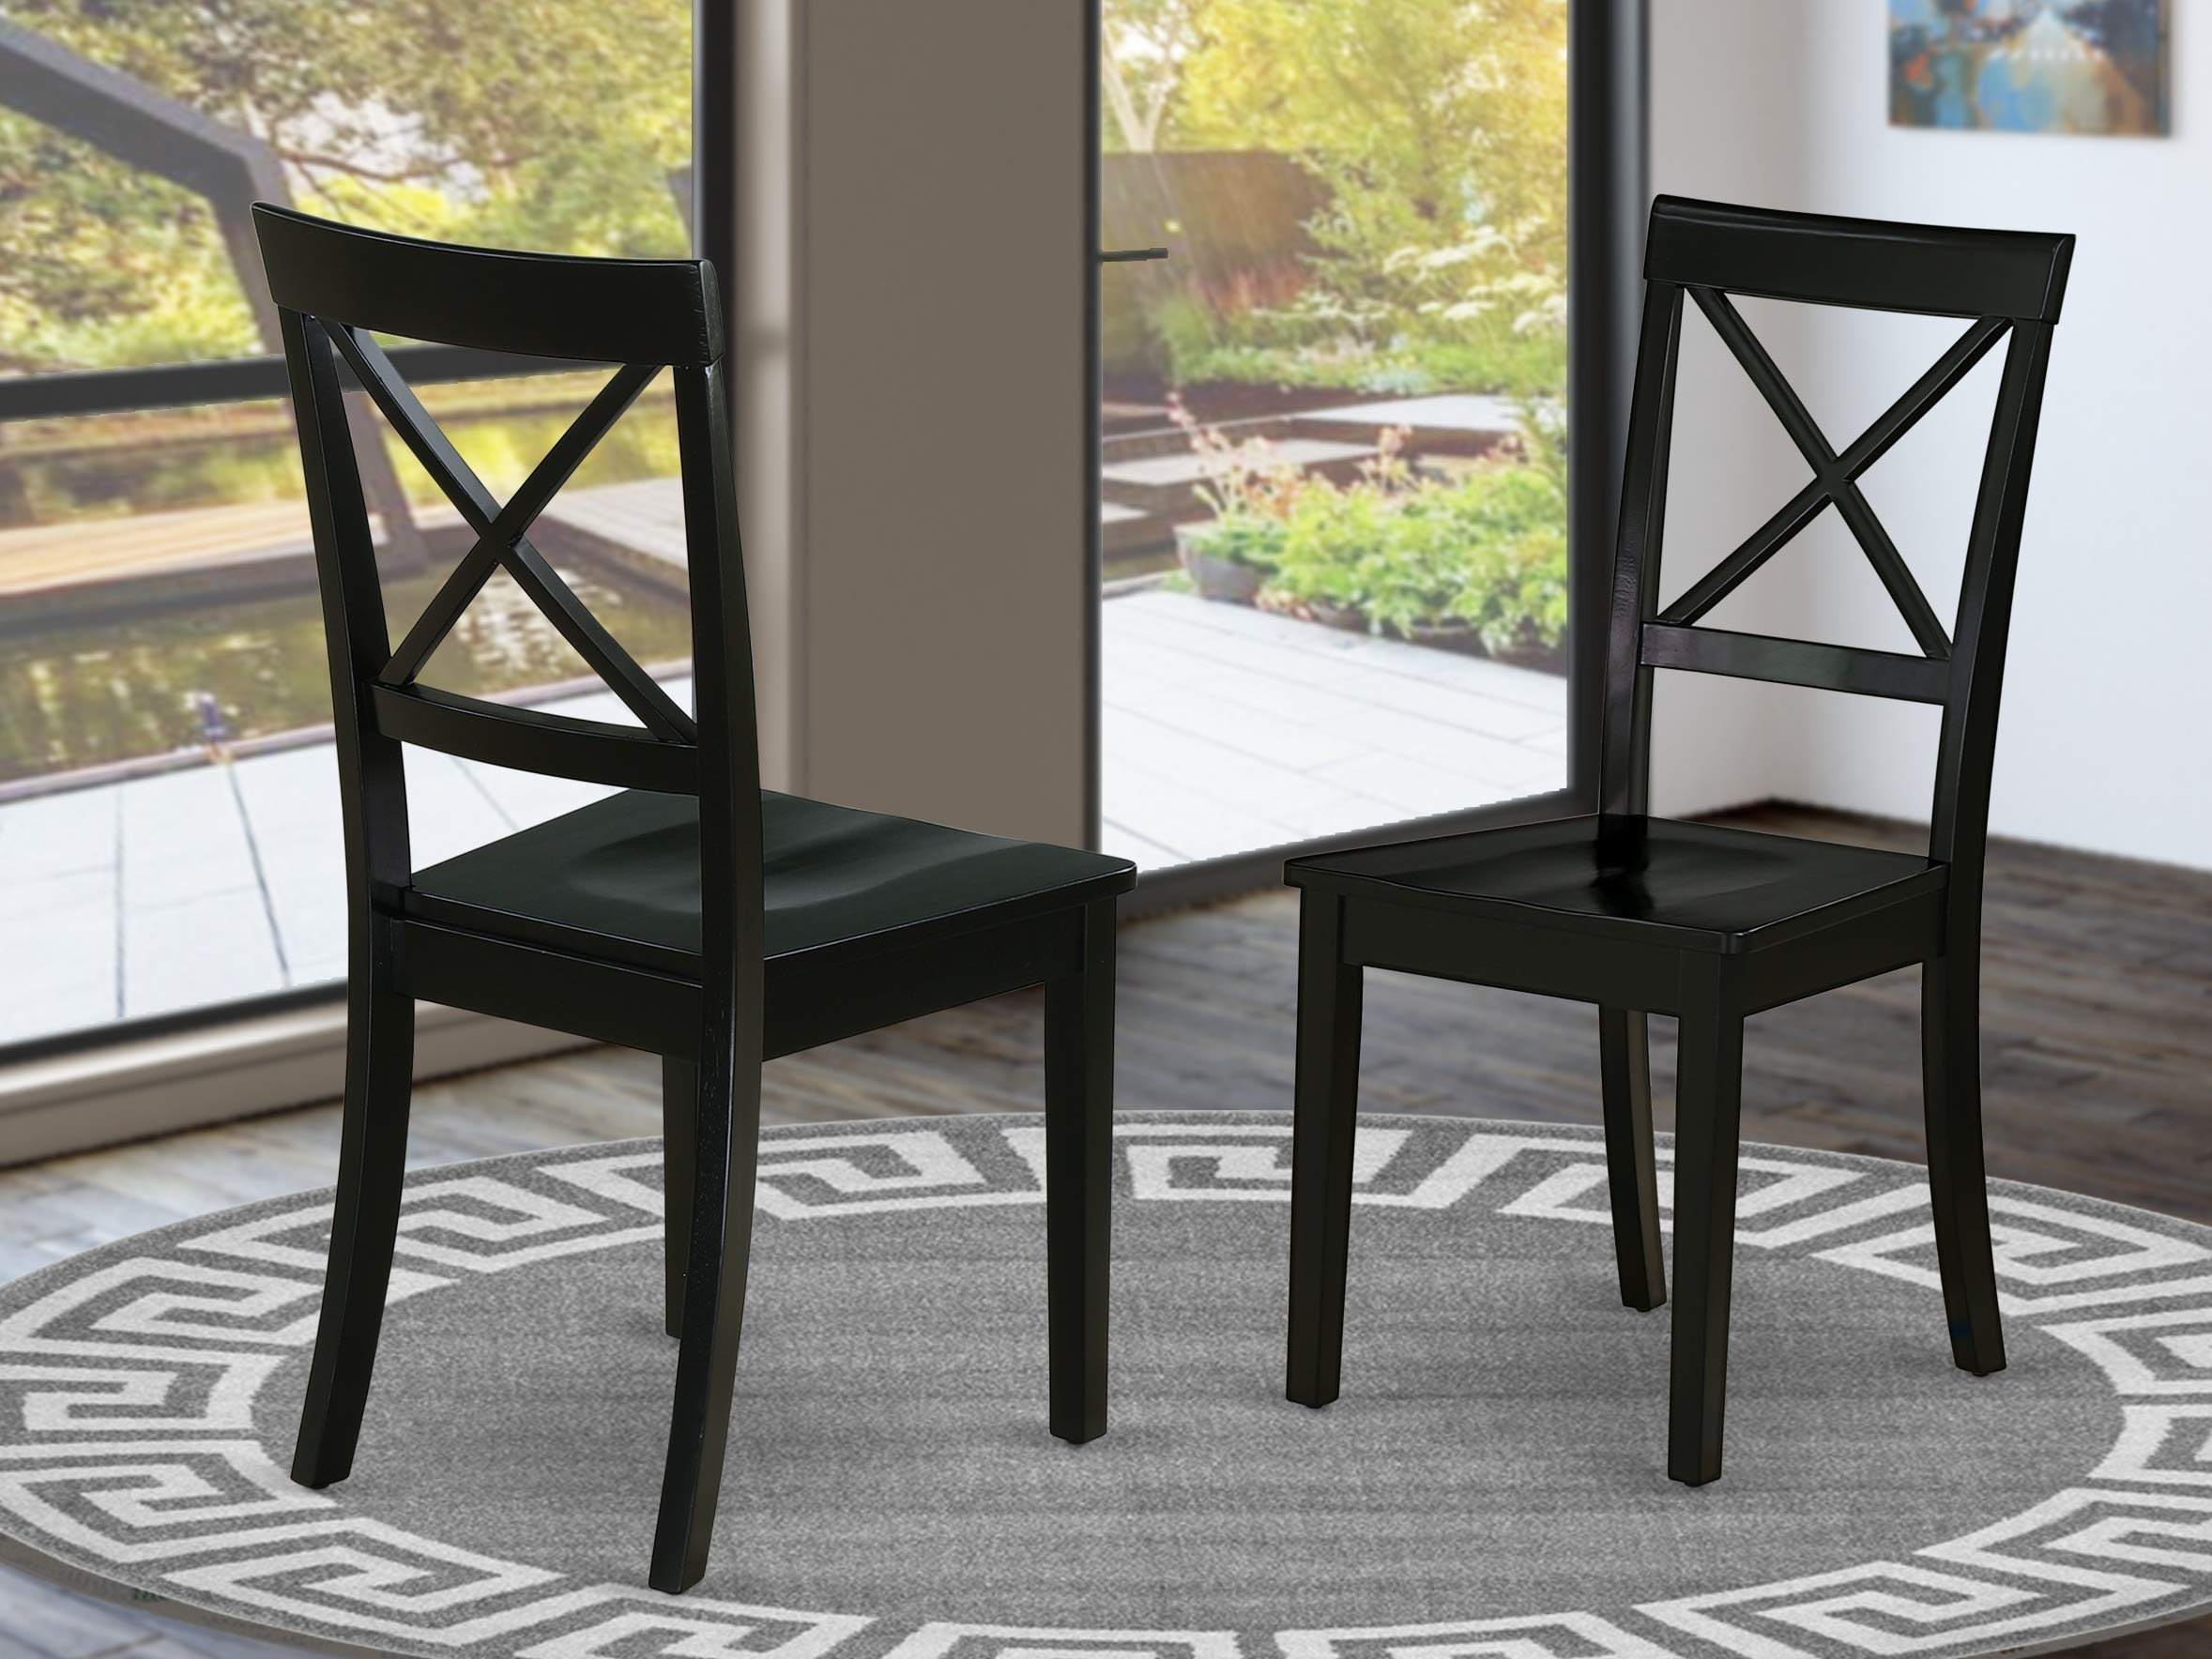 East West Furniture BOC-BLK-W Boston Formal Dining Chair Wood Seat in Black Finish (Set of 2), by East West Furniture